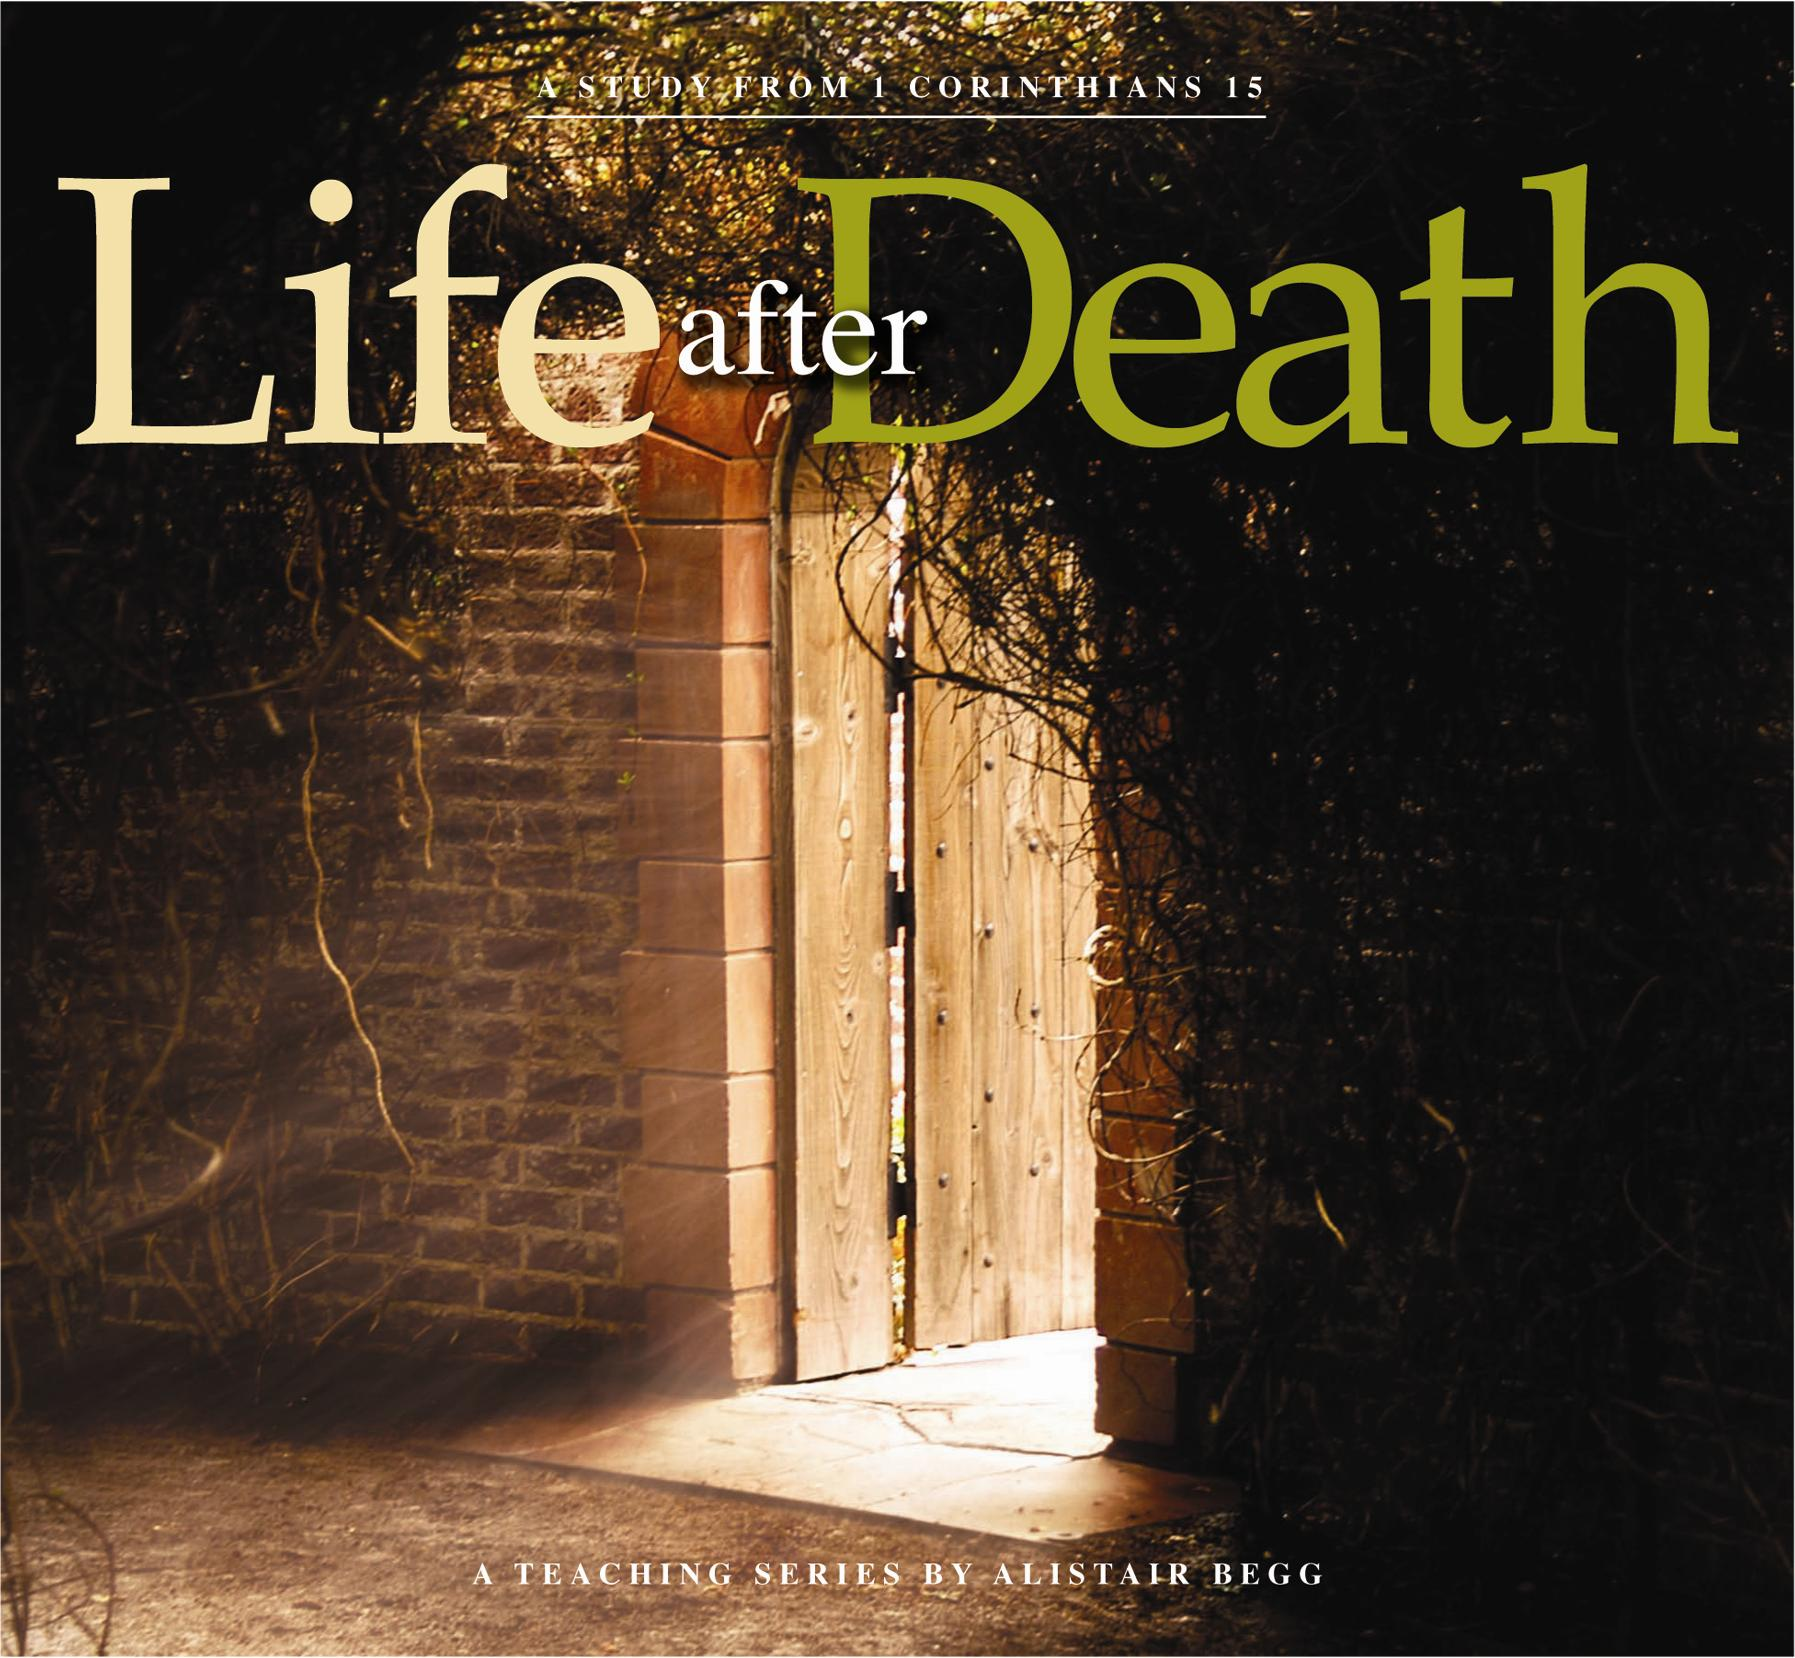 life after death The standard view of life after death has long focused on a disembodied soul that, immediately pursuant to the expiration of the body, goes either to heaven or to hell.